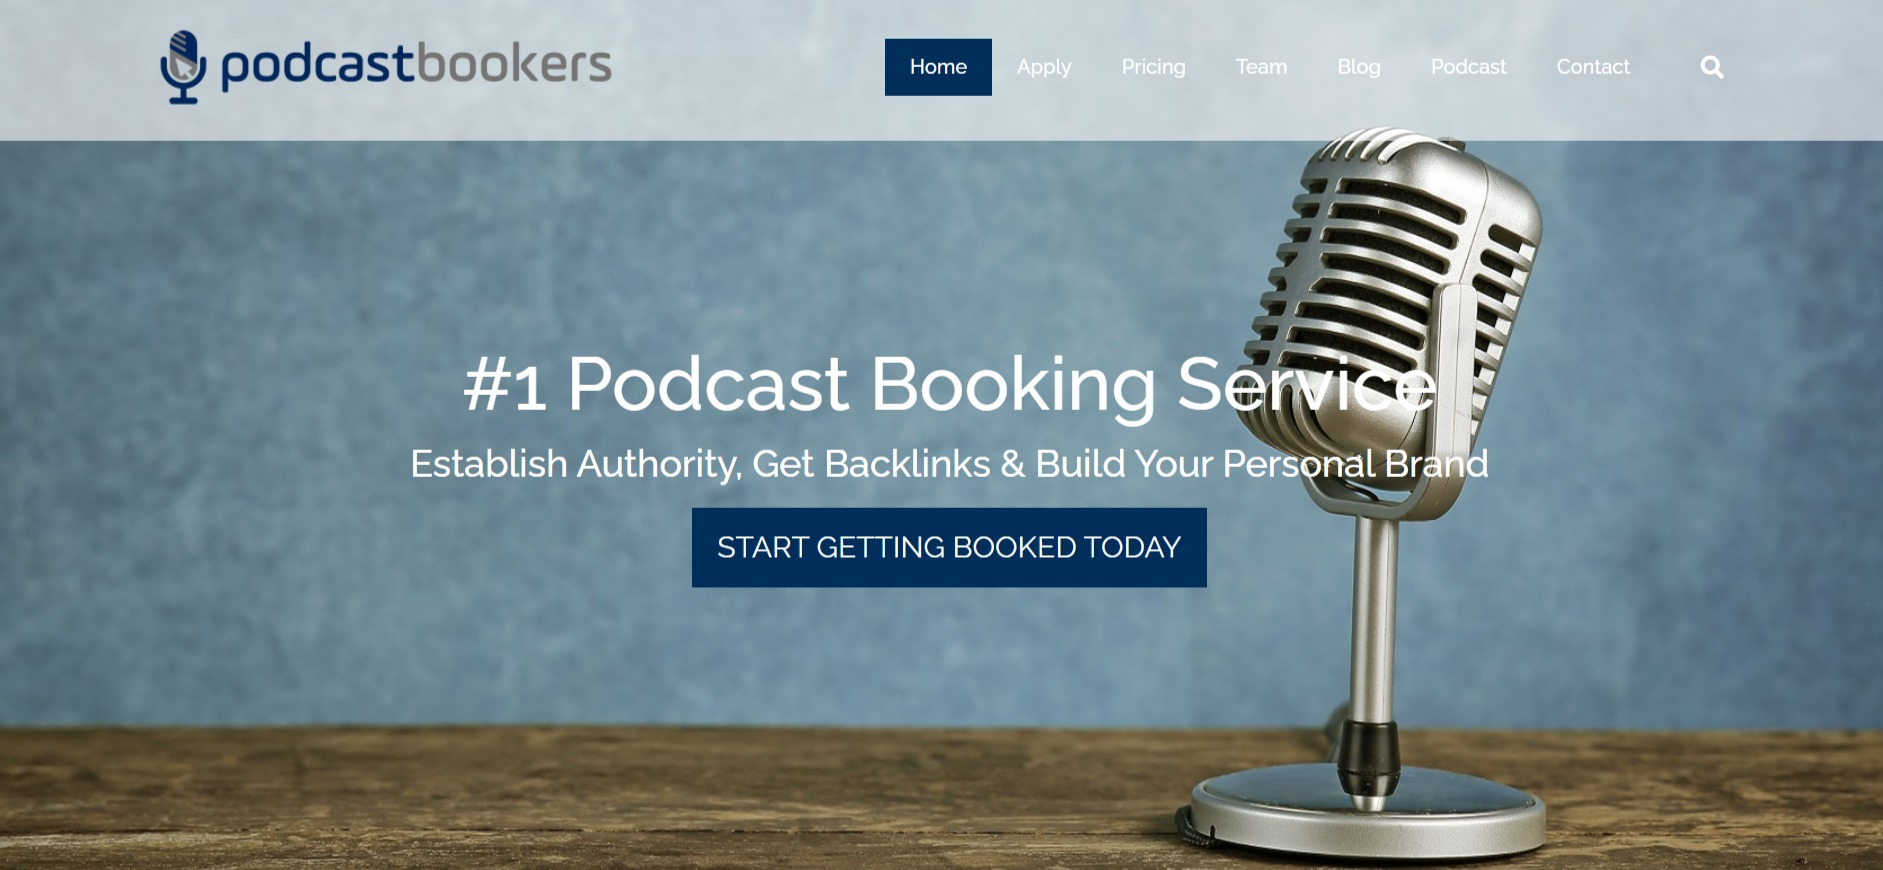 Podcast Bookers Connect How to-Get Booked as a Guest on a Podcast